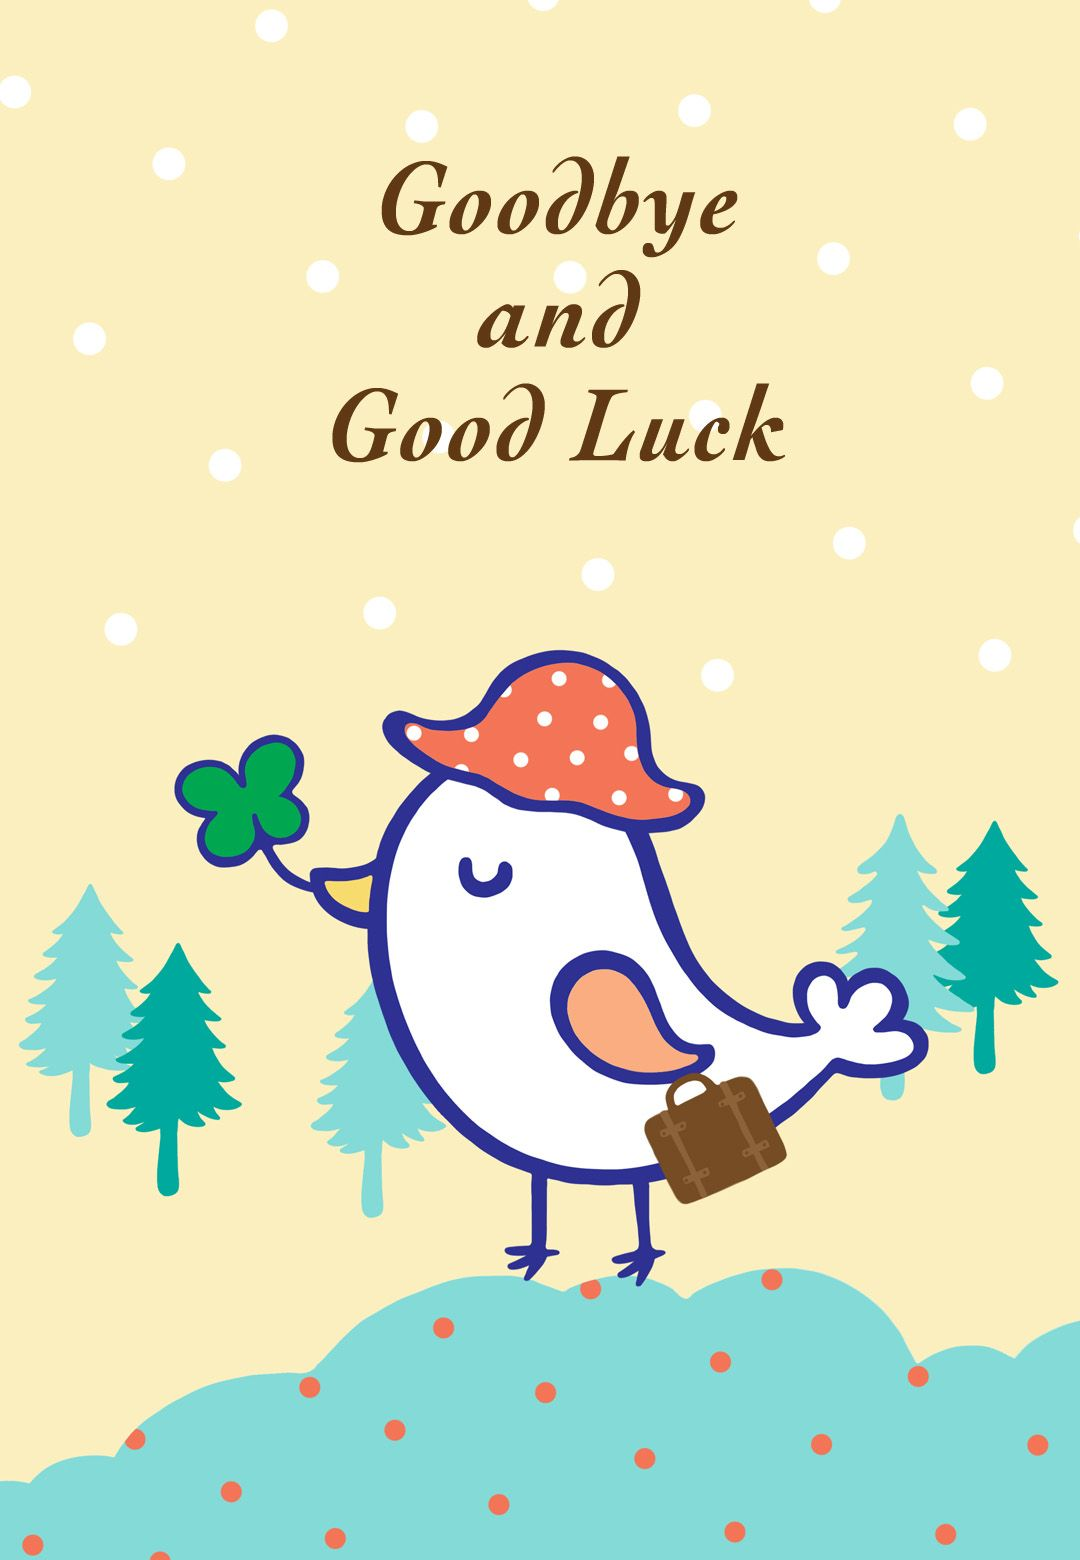 Free printable goodbye and good luck greeting card littlestar free printable goodbye and good luck greeting card pronofoot35fo Image collections